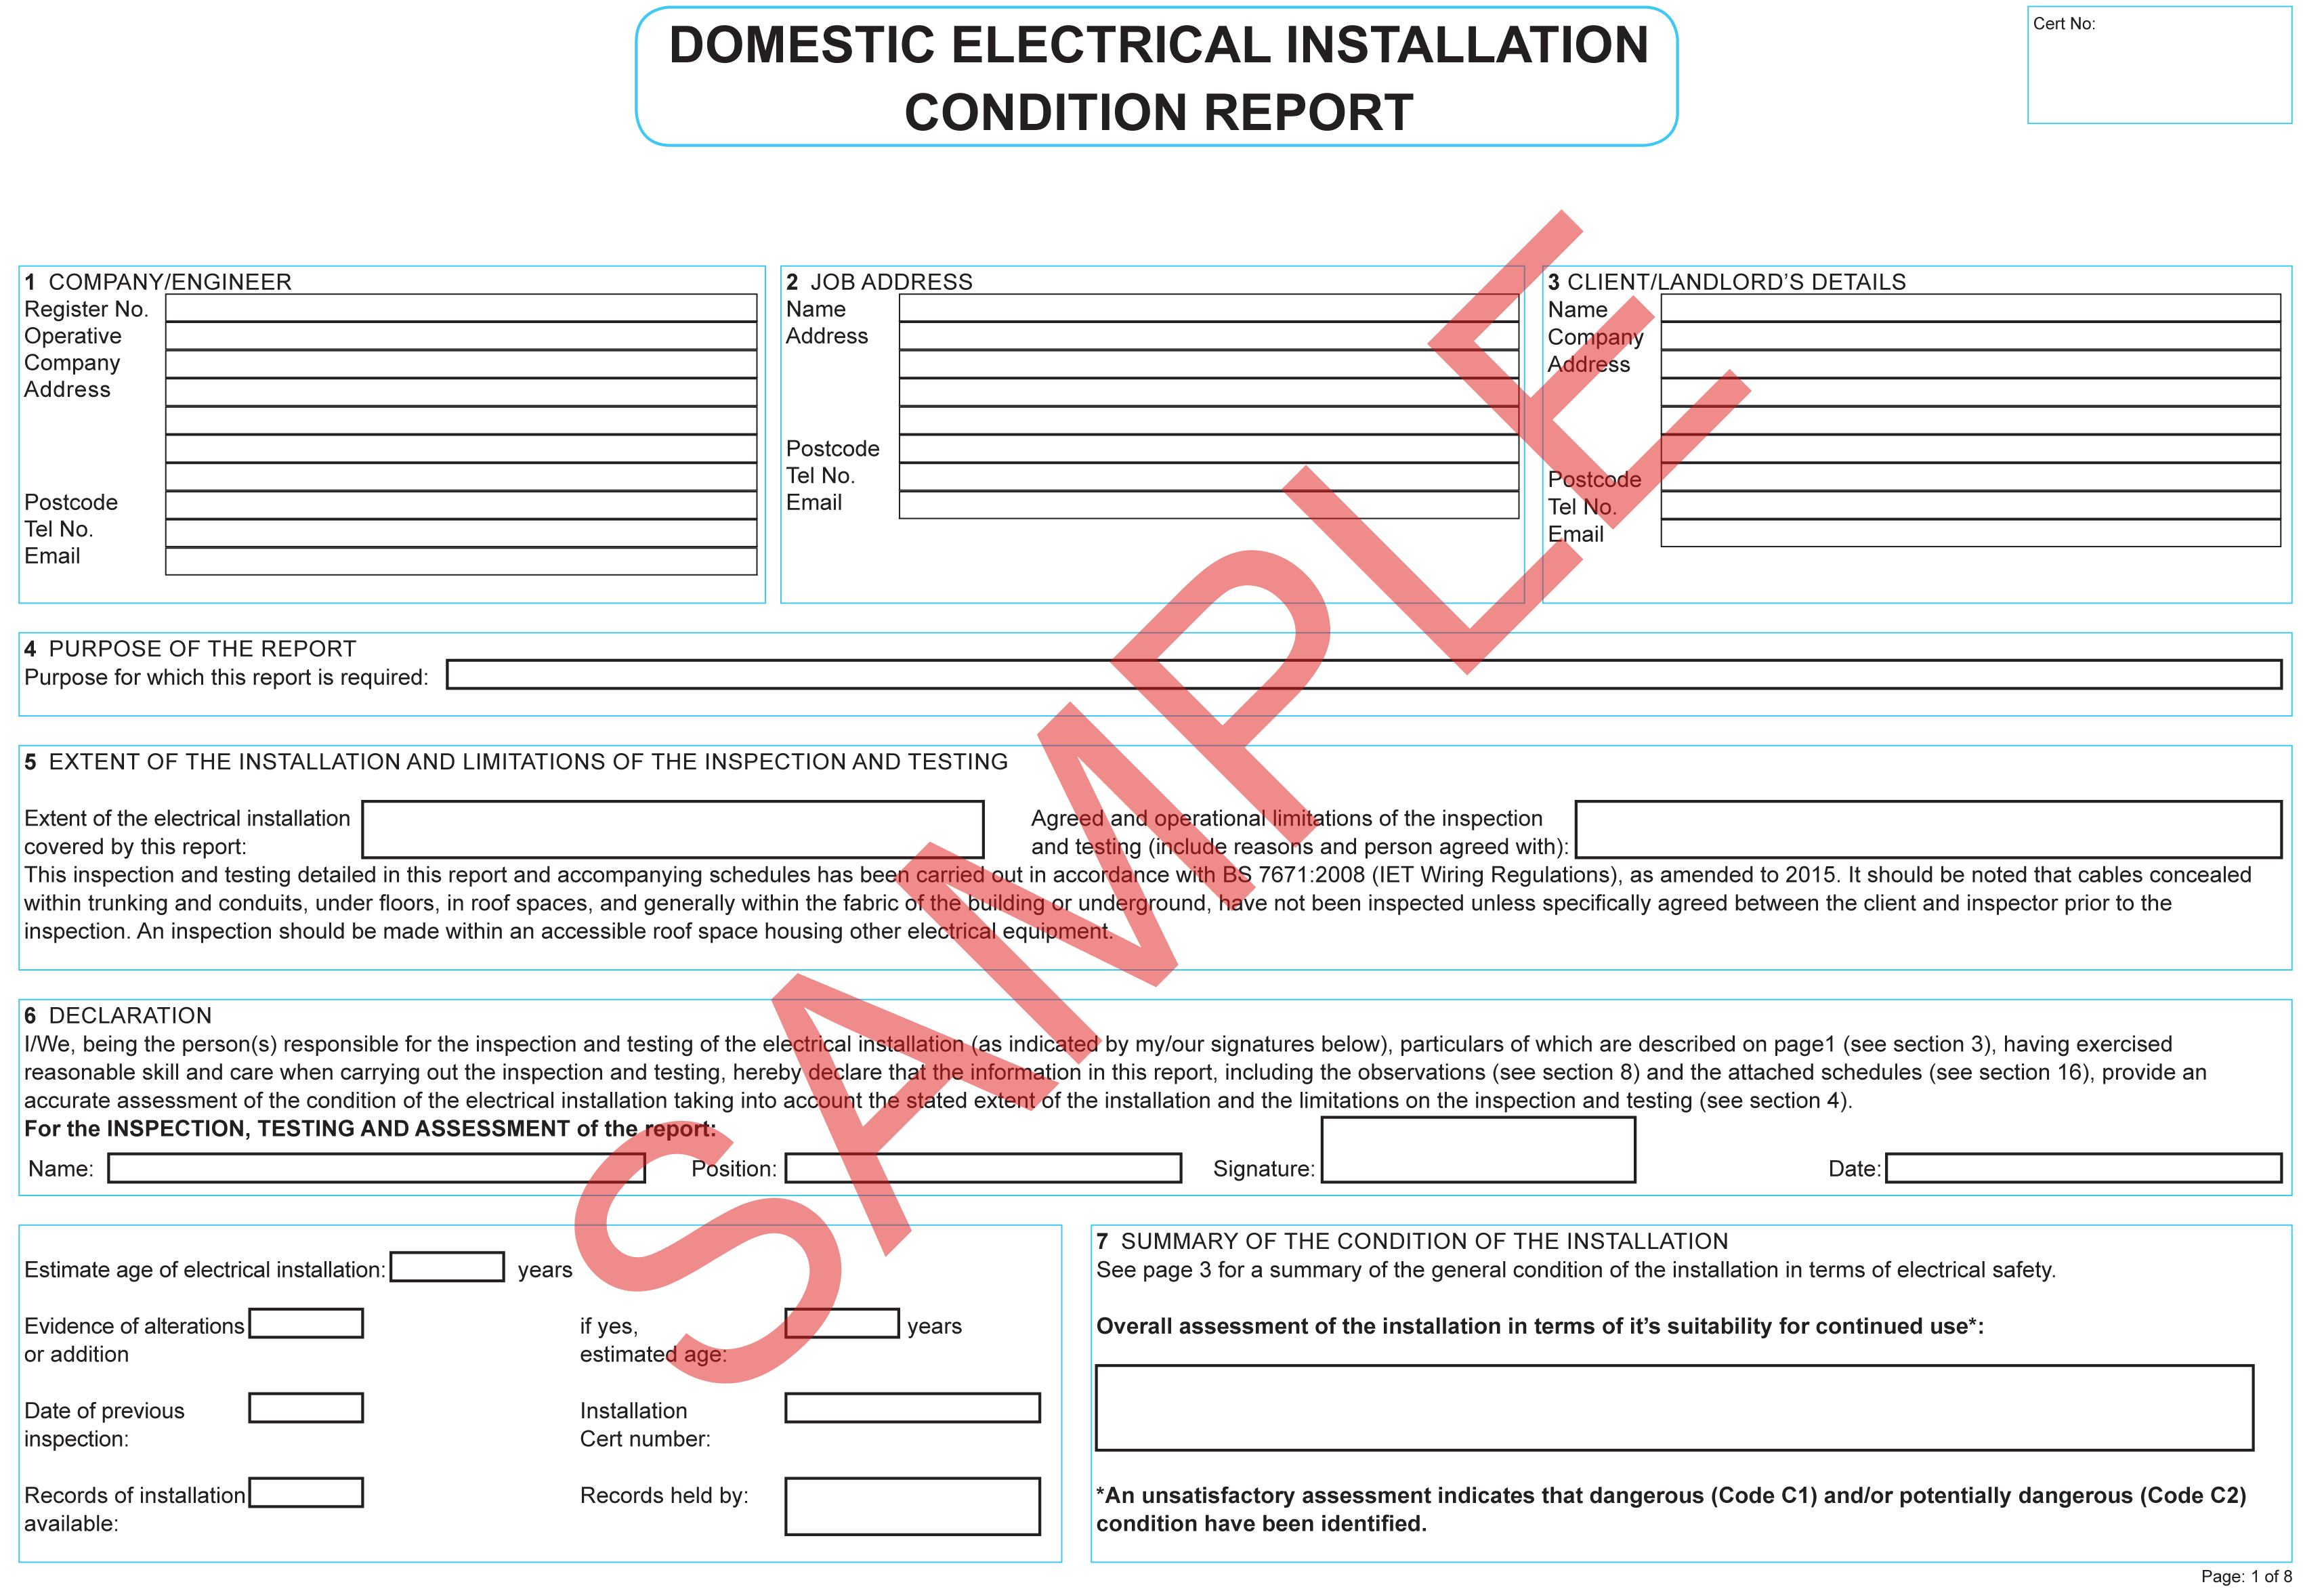 Certificates Everycert Home Wiring Installation Domestic Electrical Condition Report G832 Sseg Commissioning Confirmation